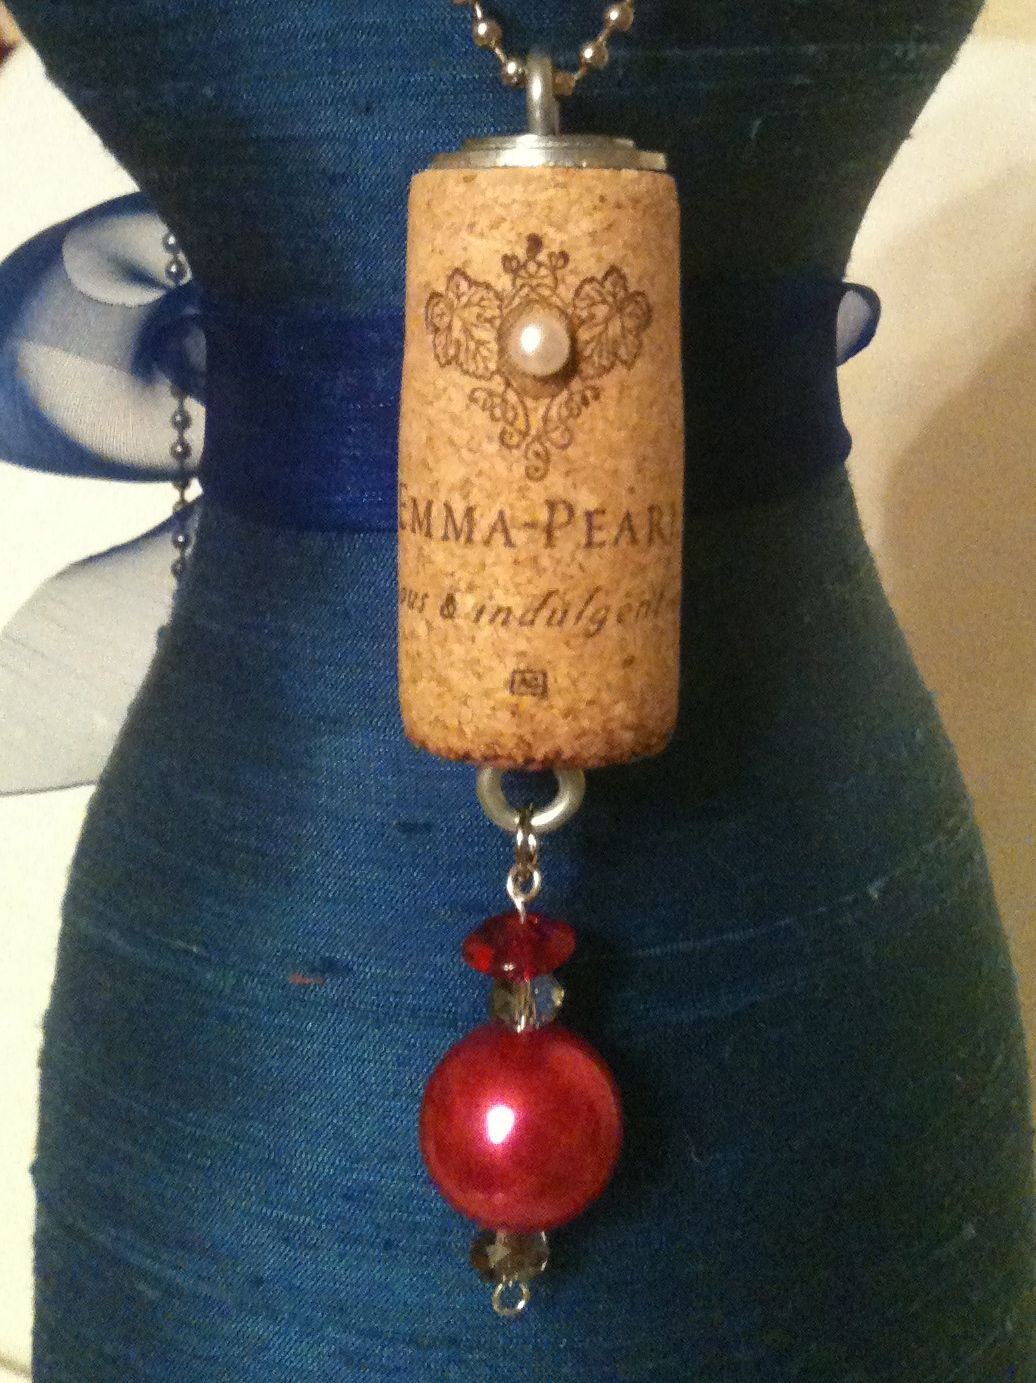 Upcycled Wine Cork Pendant: Emma Pearl